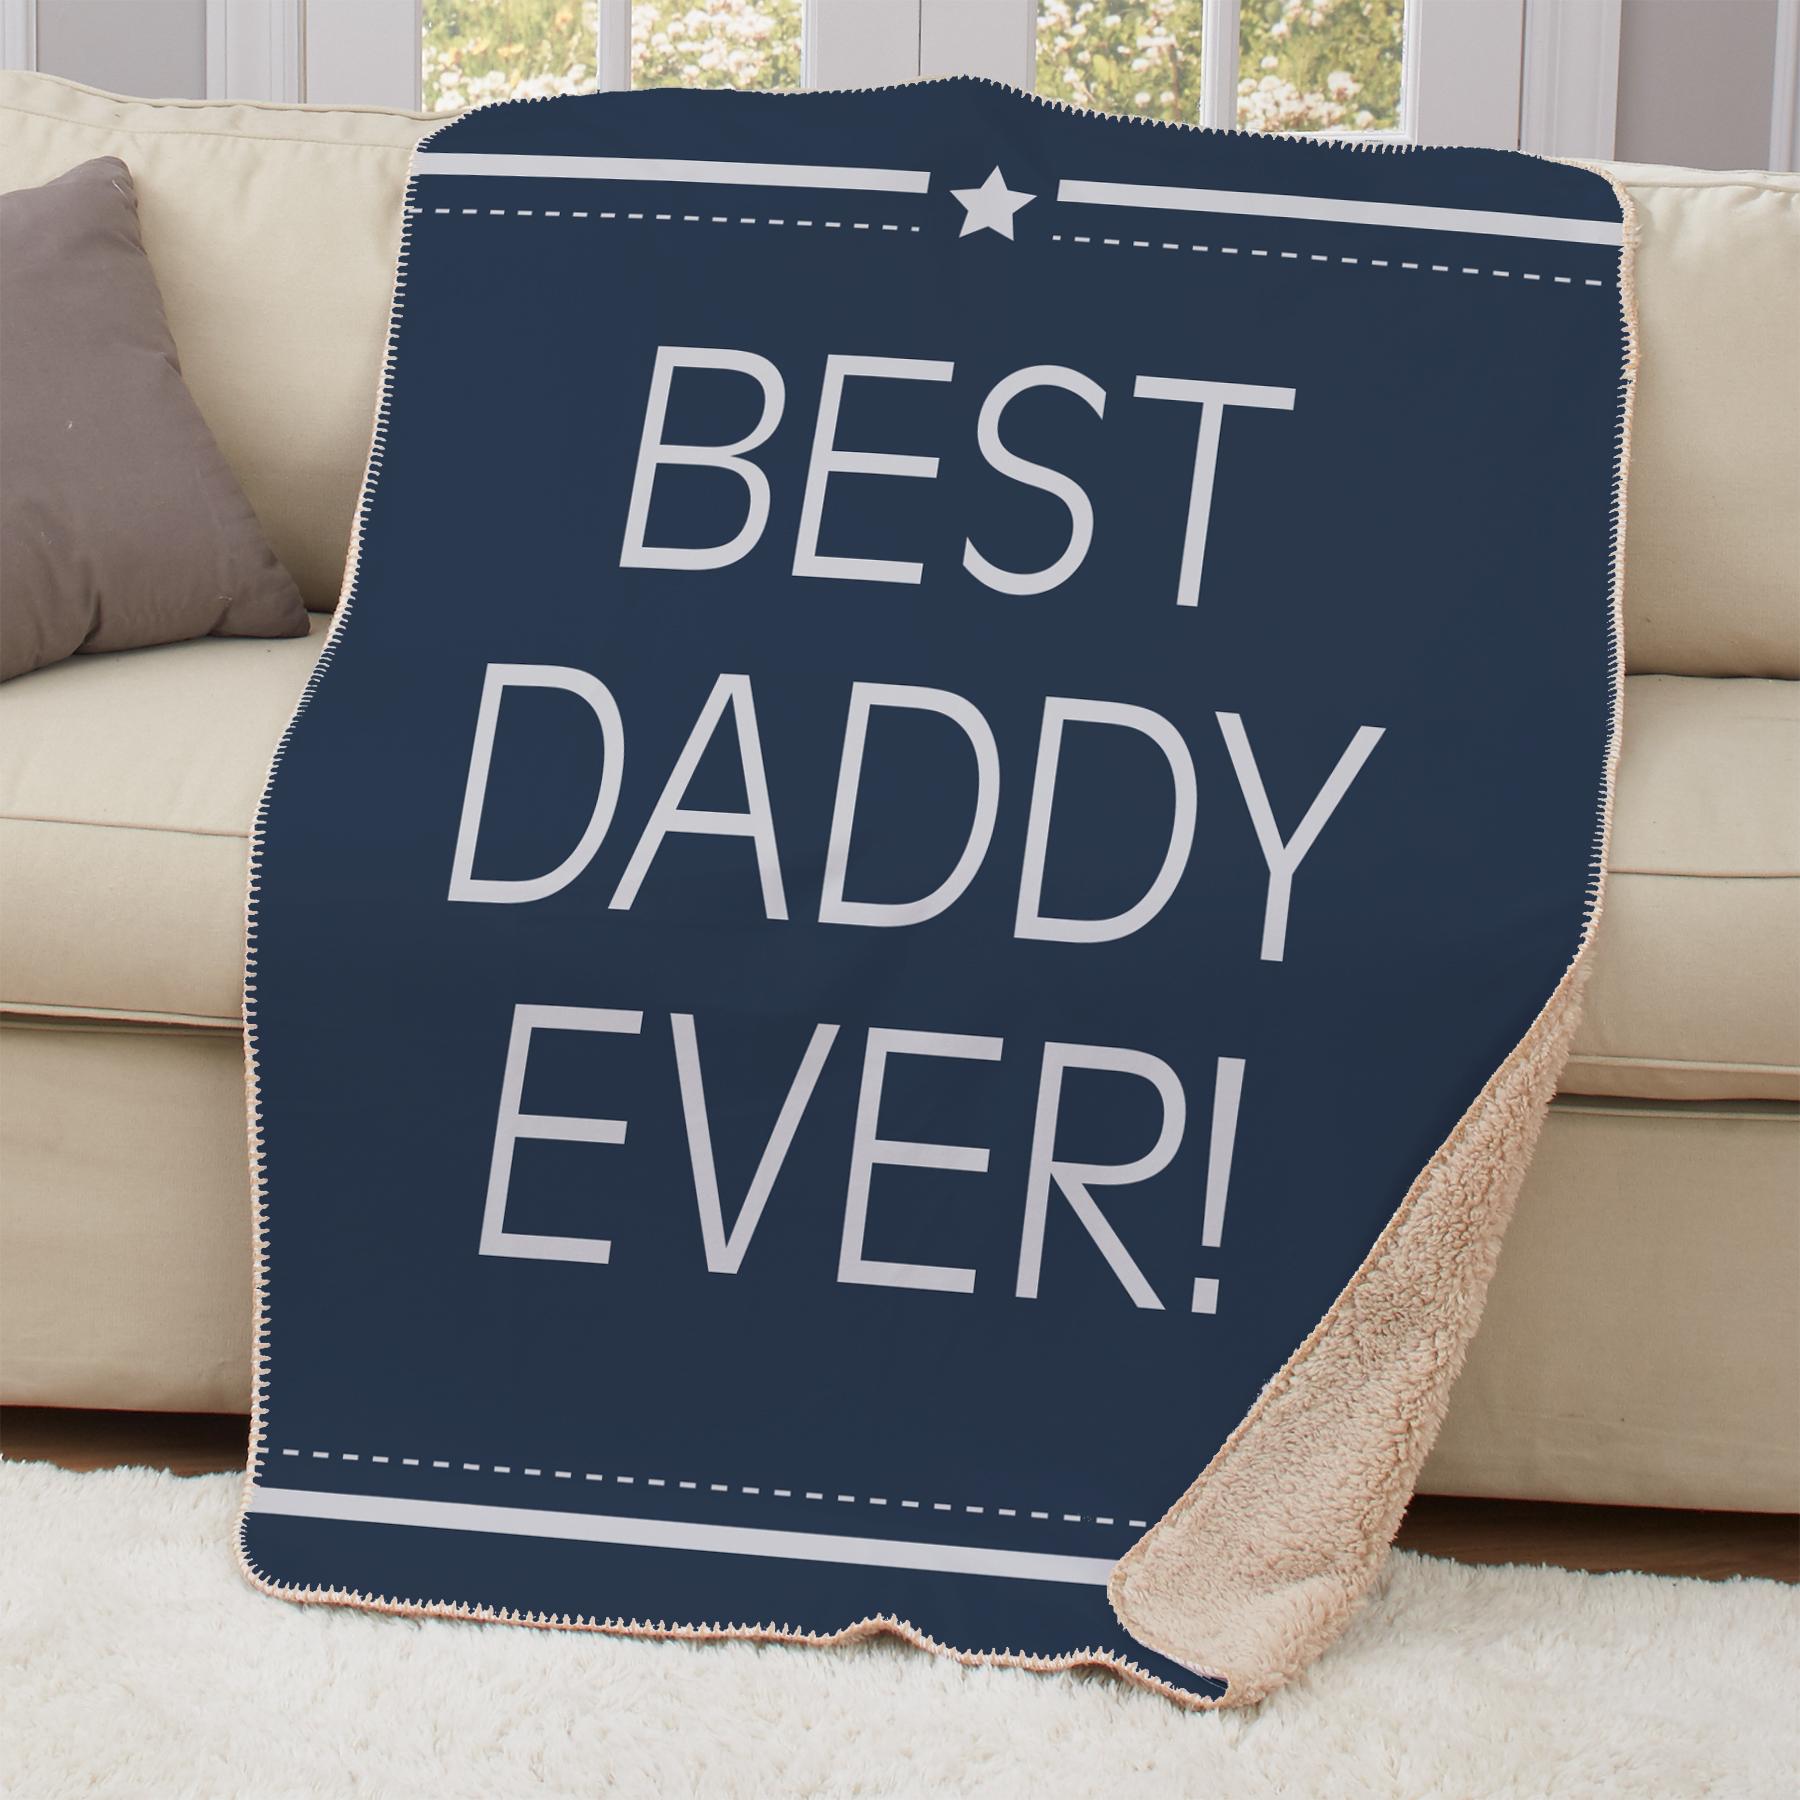 Personalized Best Daddy Ever Sherpa Blanket | Unique Father's Day Gifts